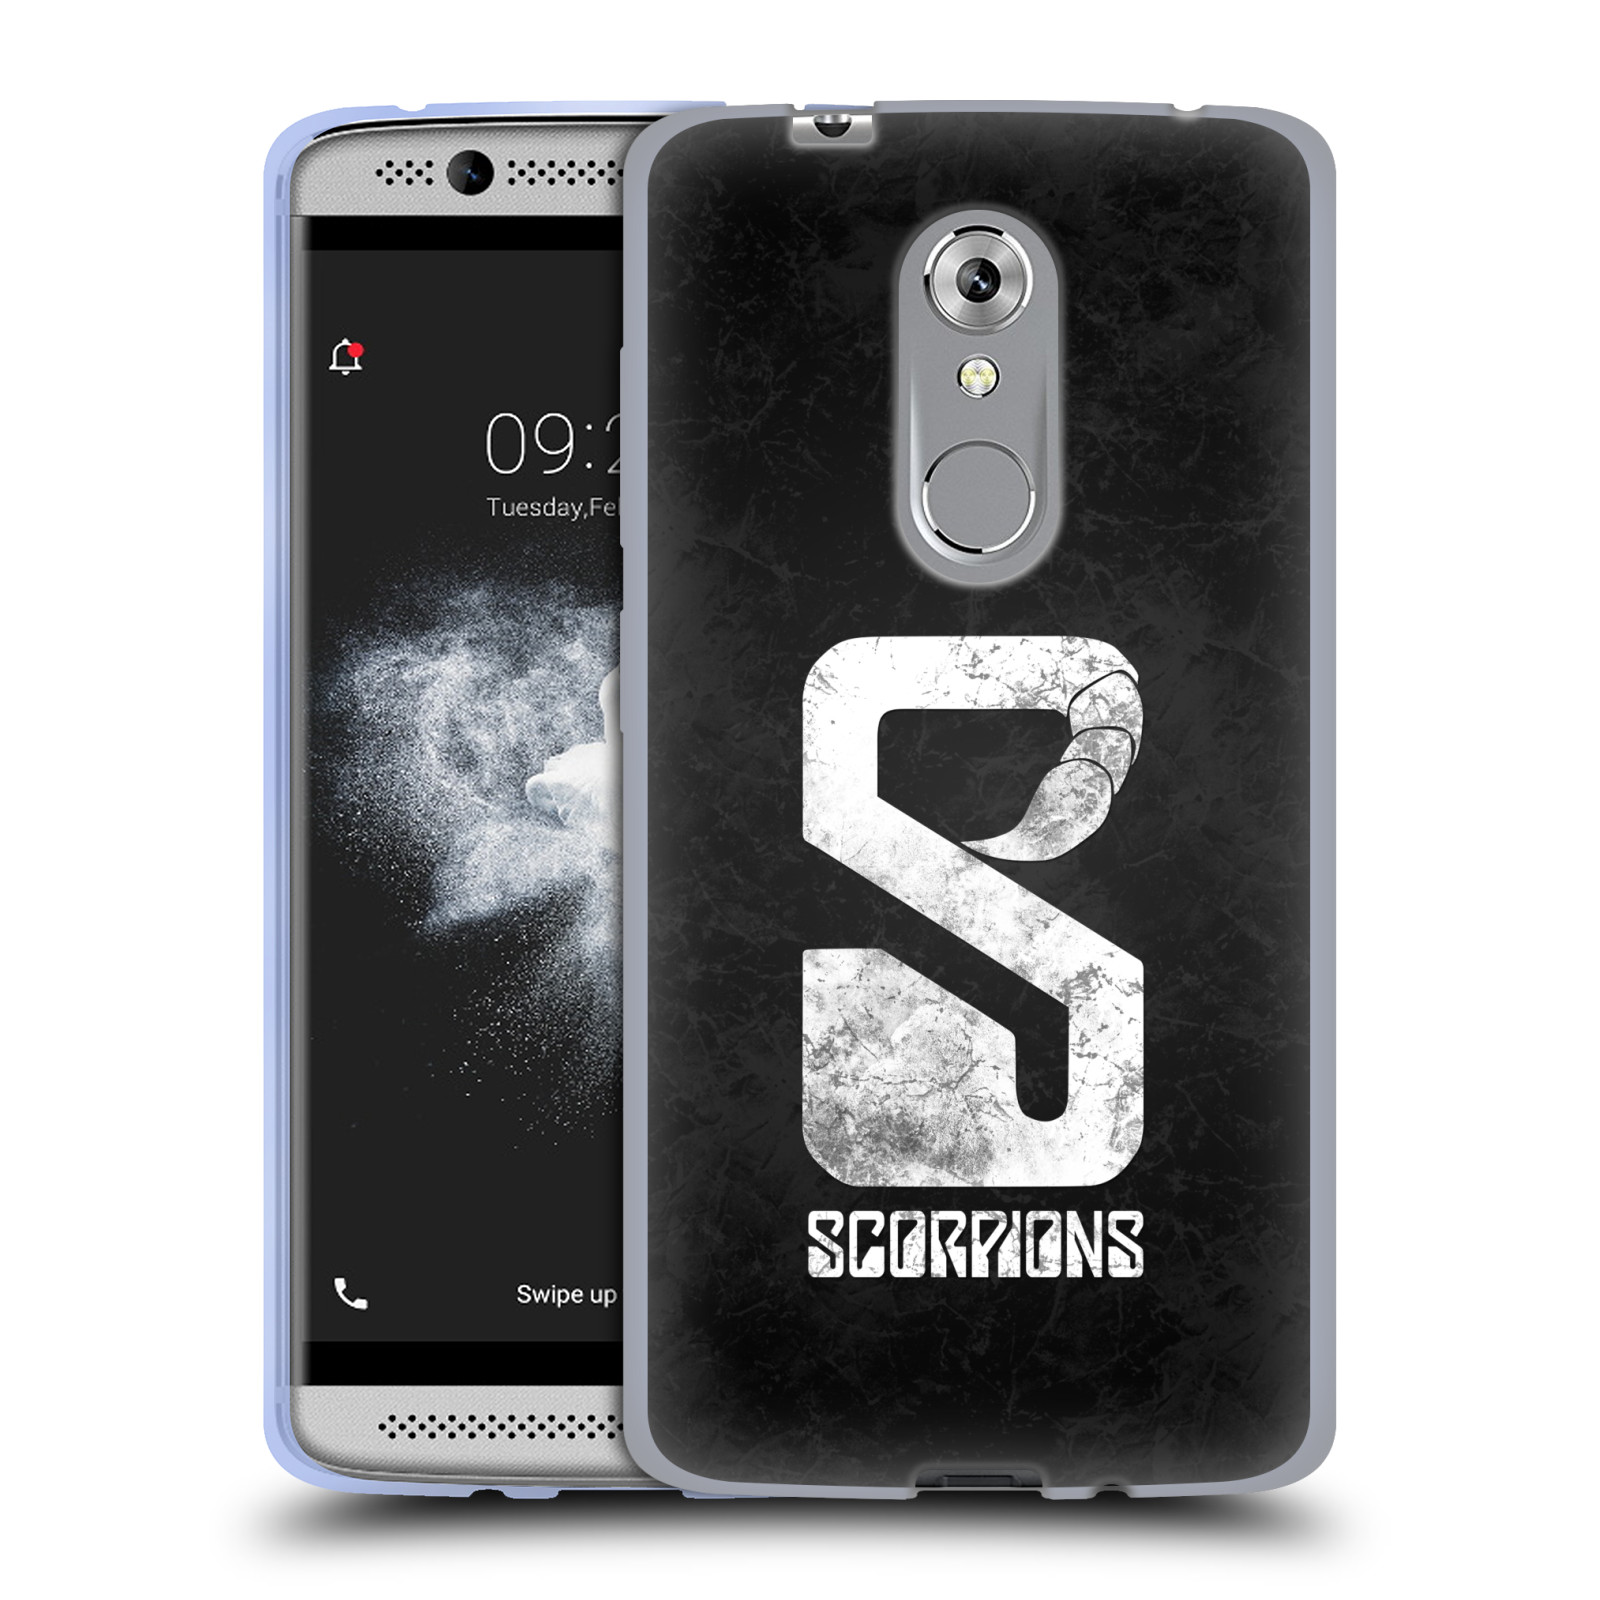 OFFICIAL-SCORPIONS-LOGOS-SOFT-GEL-CASE-FOR-ZTE-PHONES